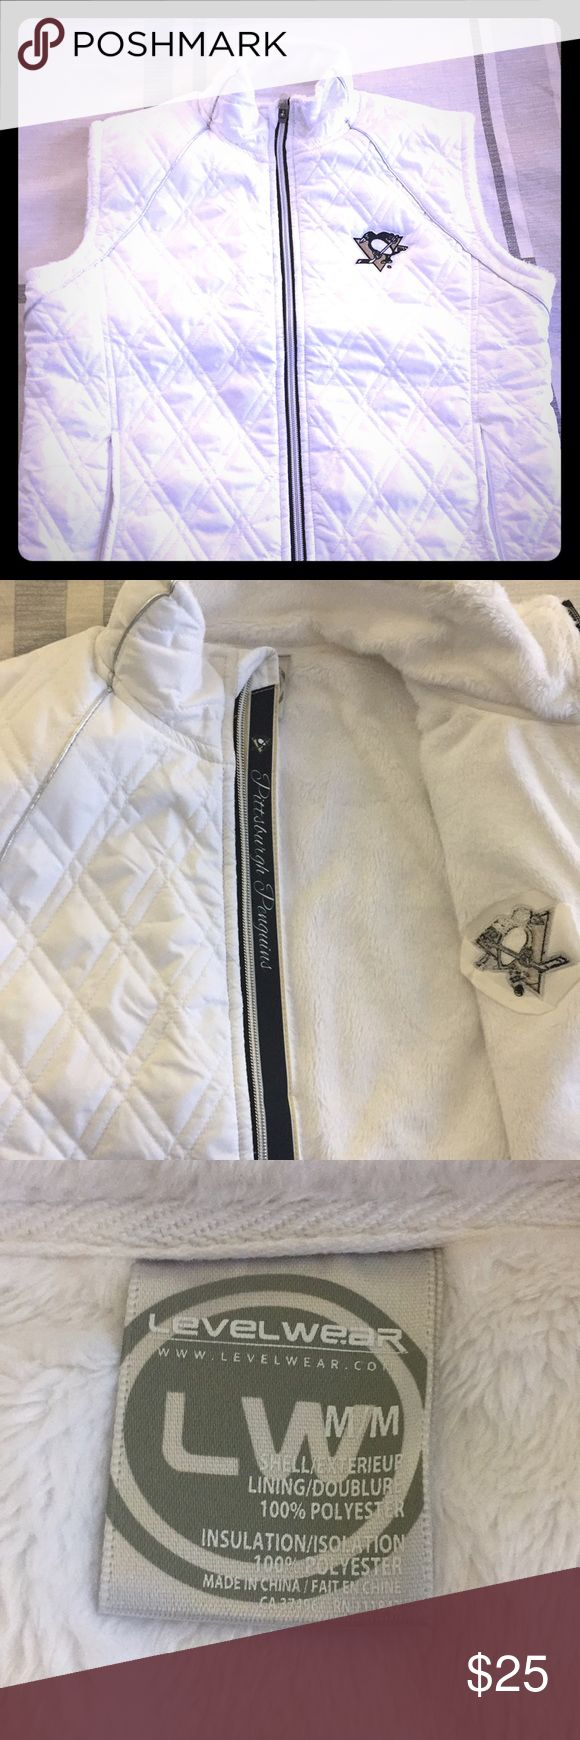 Pittsburgh Penguins Vest Winter white vest with Pittsburgh Penguins Logo and silver details. Lining is soft and warm, great to wear to a game! Worn a few times but in perfect condition! Inside detail along zipper. Pockets zip close. Jackets & Coats Vests